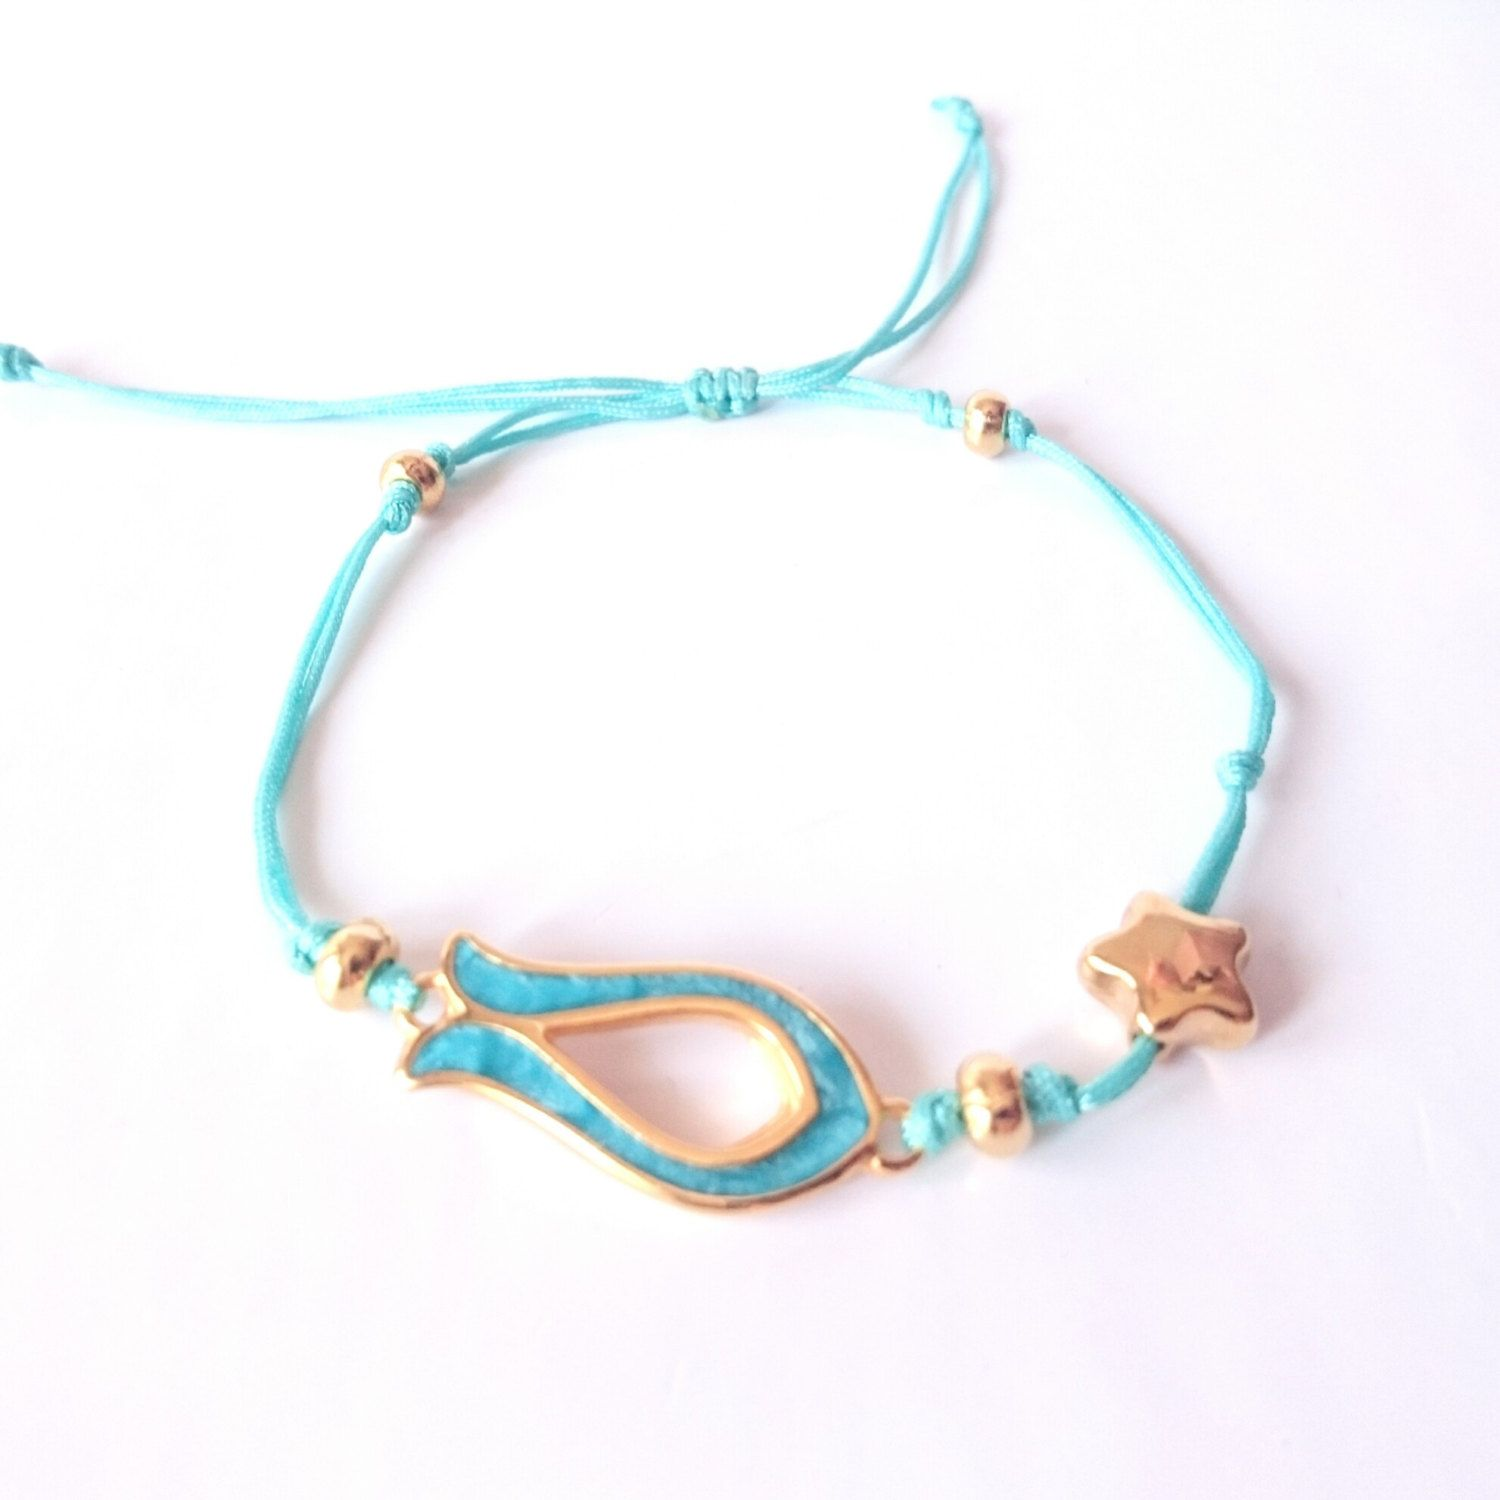 alibaba turquoise aliexpress accessories bohemian item jewelry in bracelets bracelet flower on com anklets carving foot women anklet summer from beads for ankle